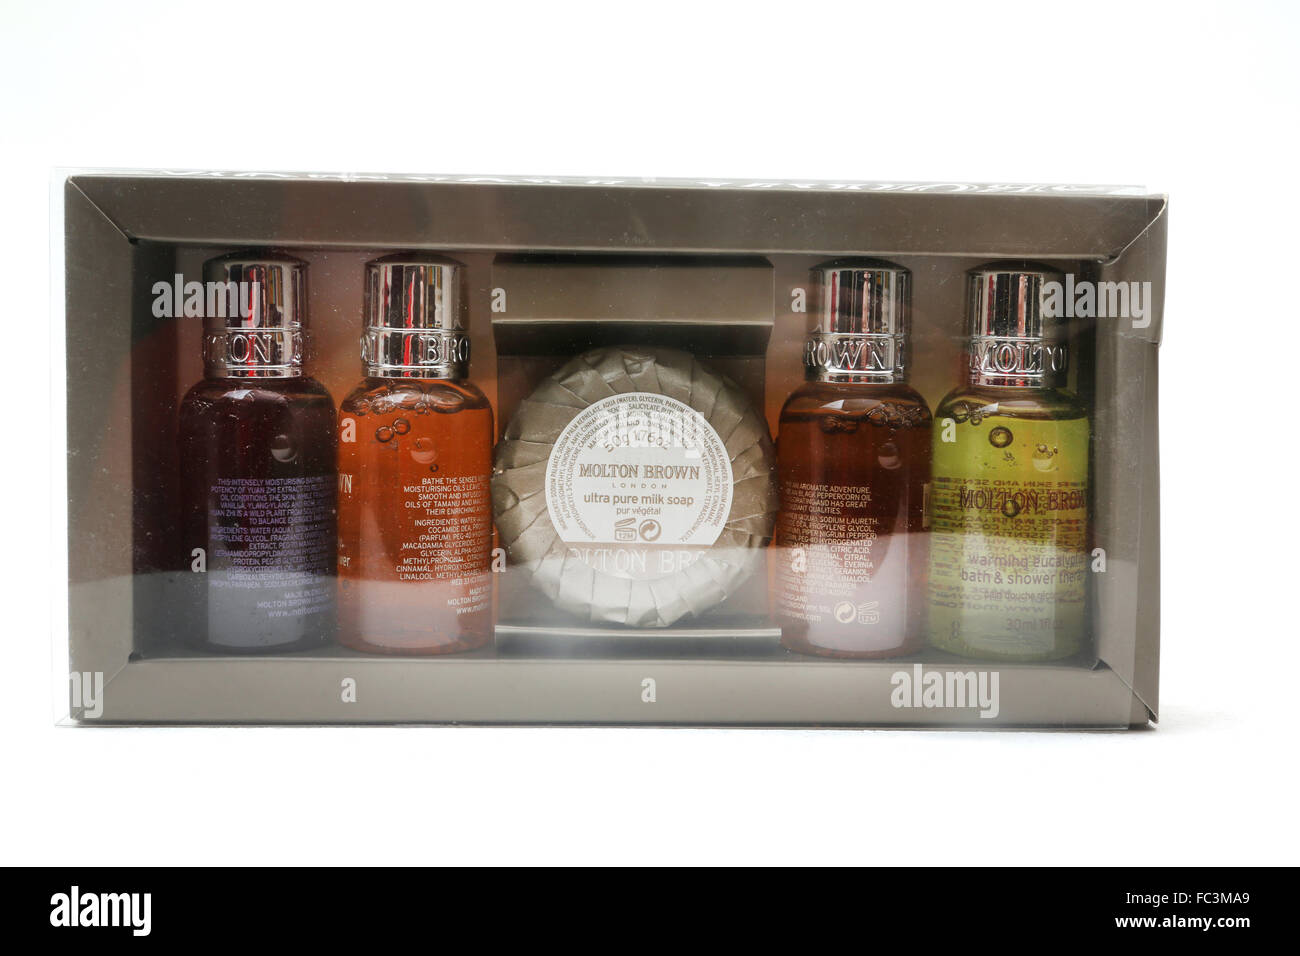 Molton Brown Toiletry Set Shower Gel, Bubble Bath And Soap - Stock Image